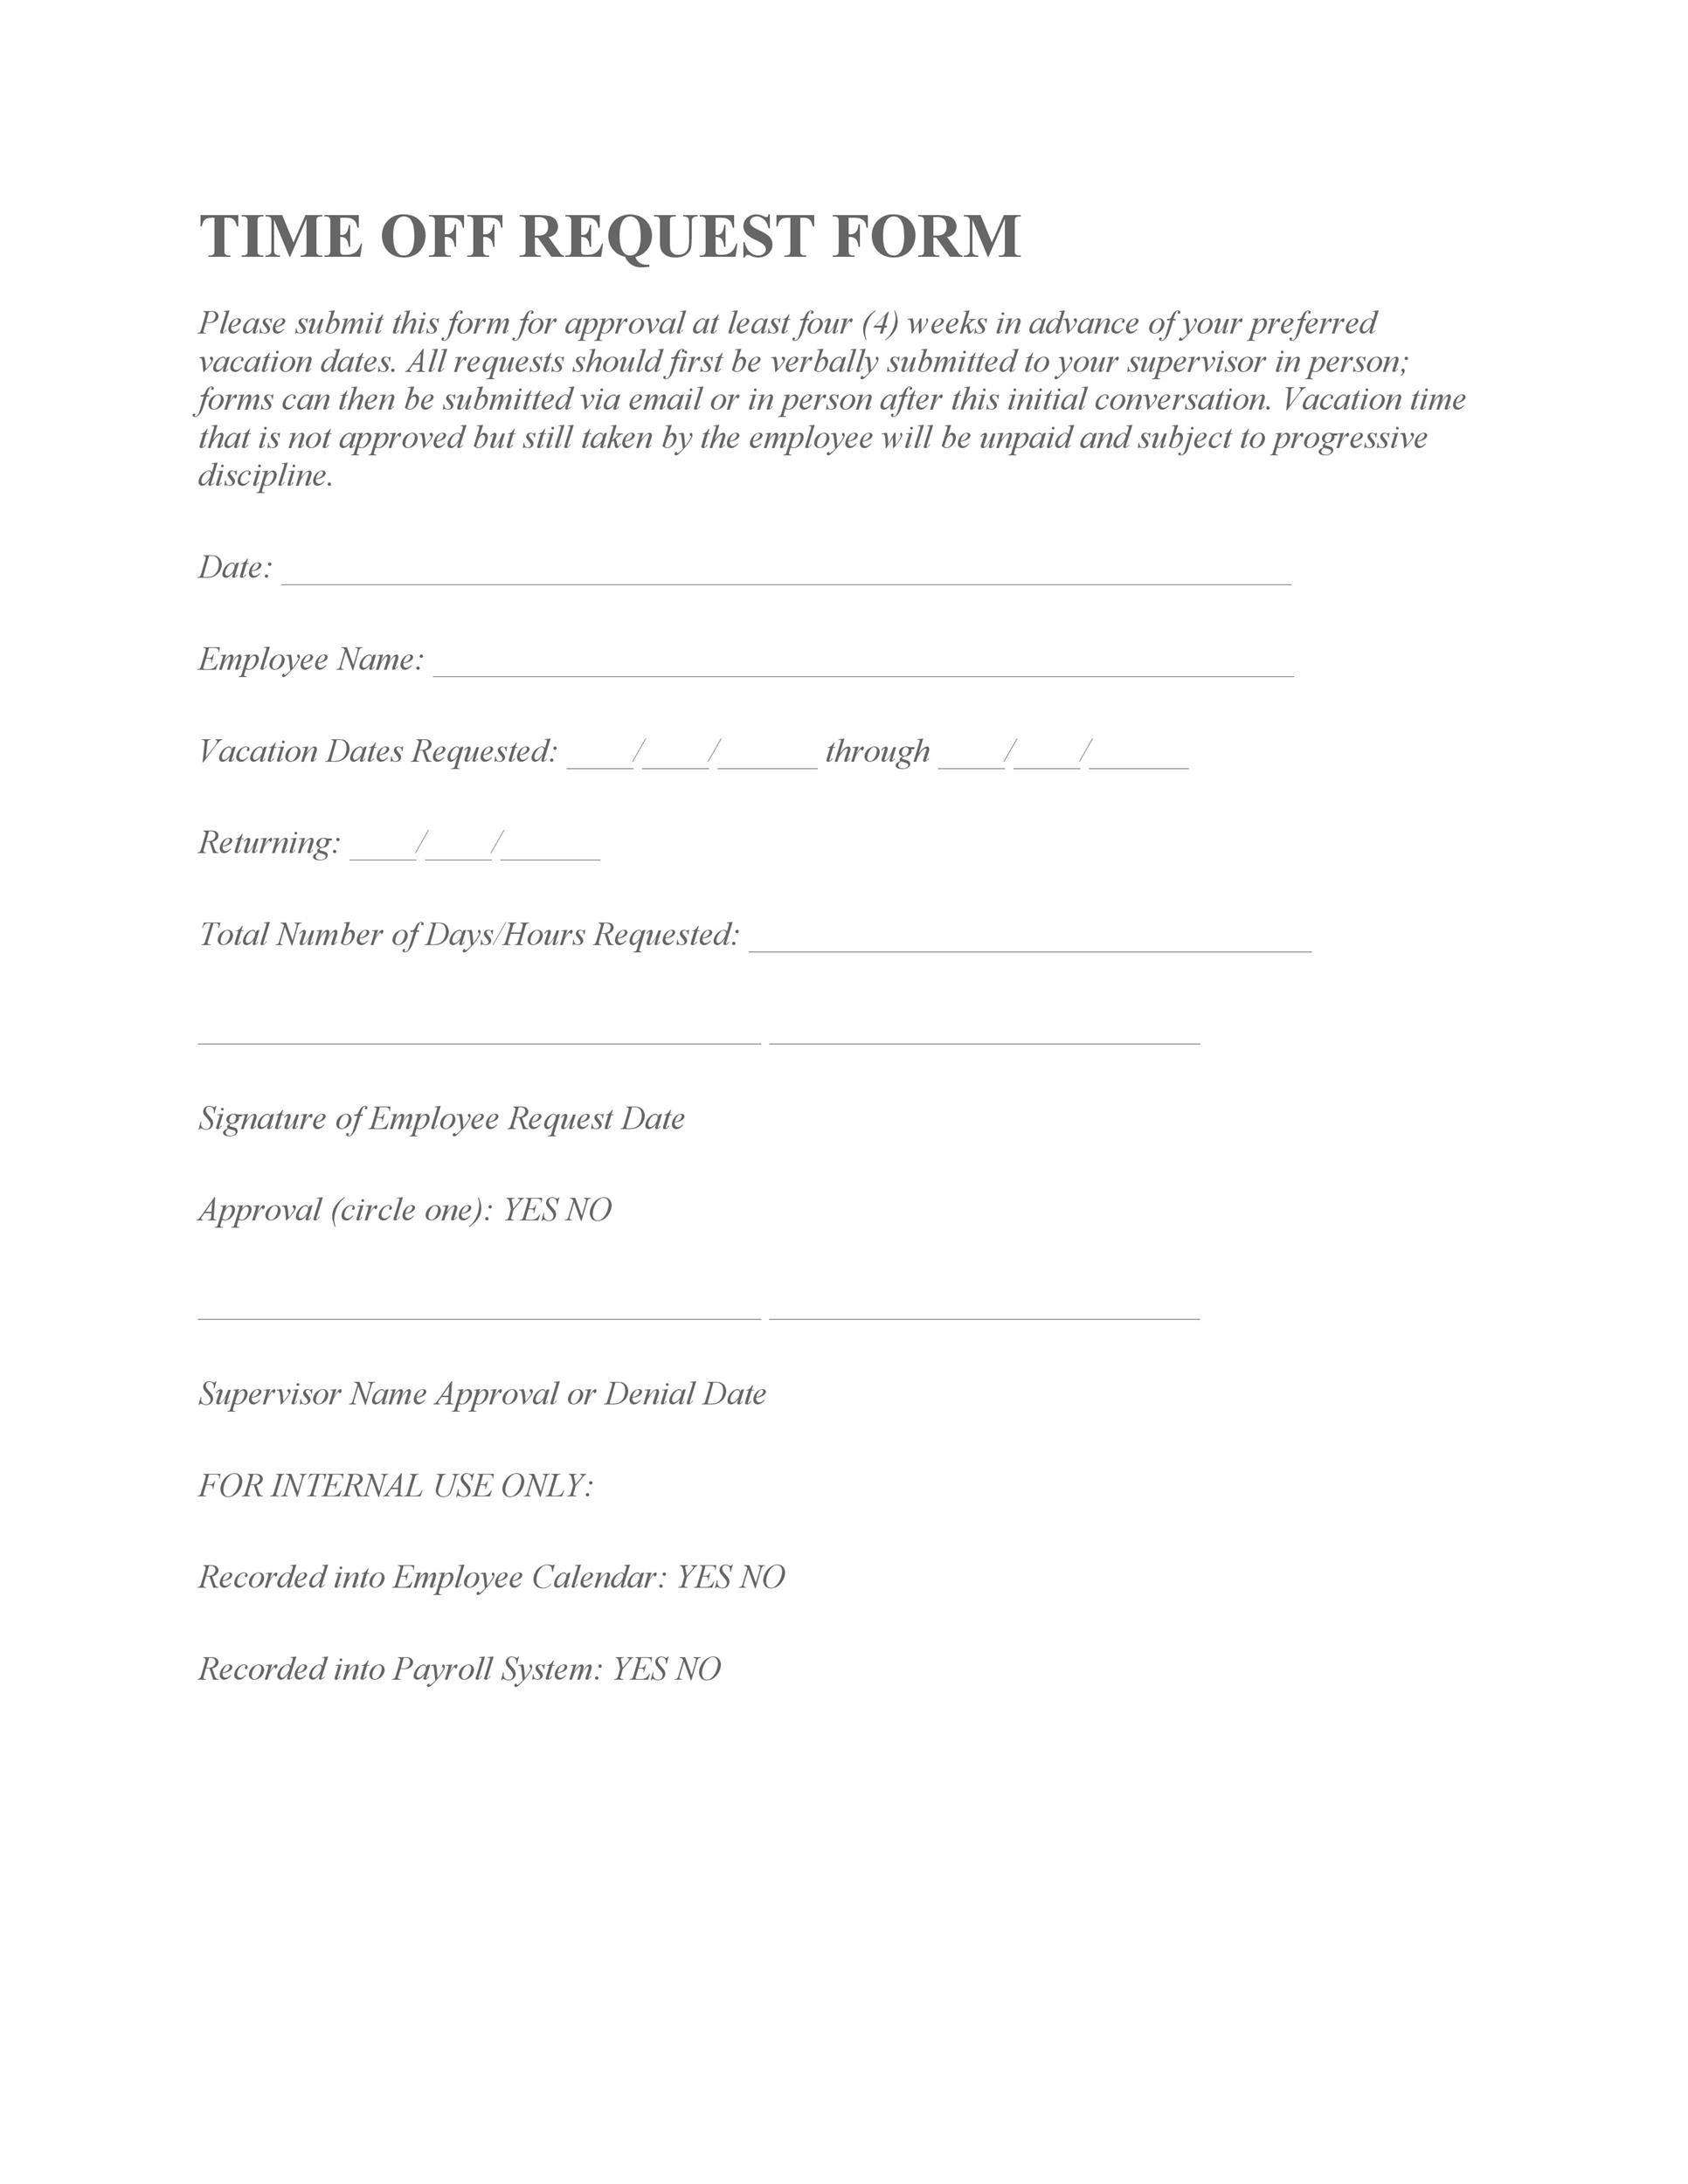 40+ Effective Time Off Request Forms  Templates - Template Lab - vacation request form